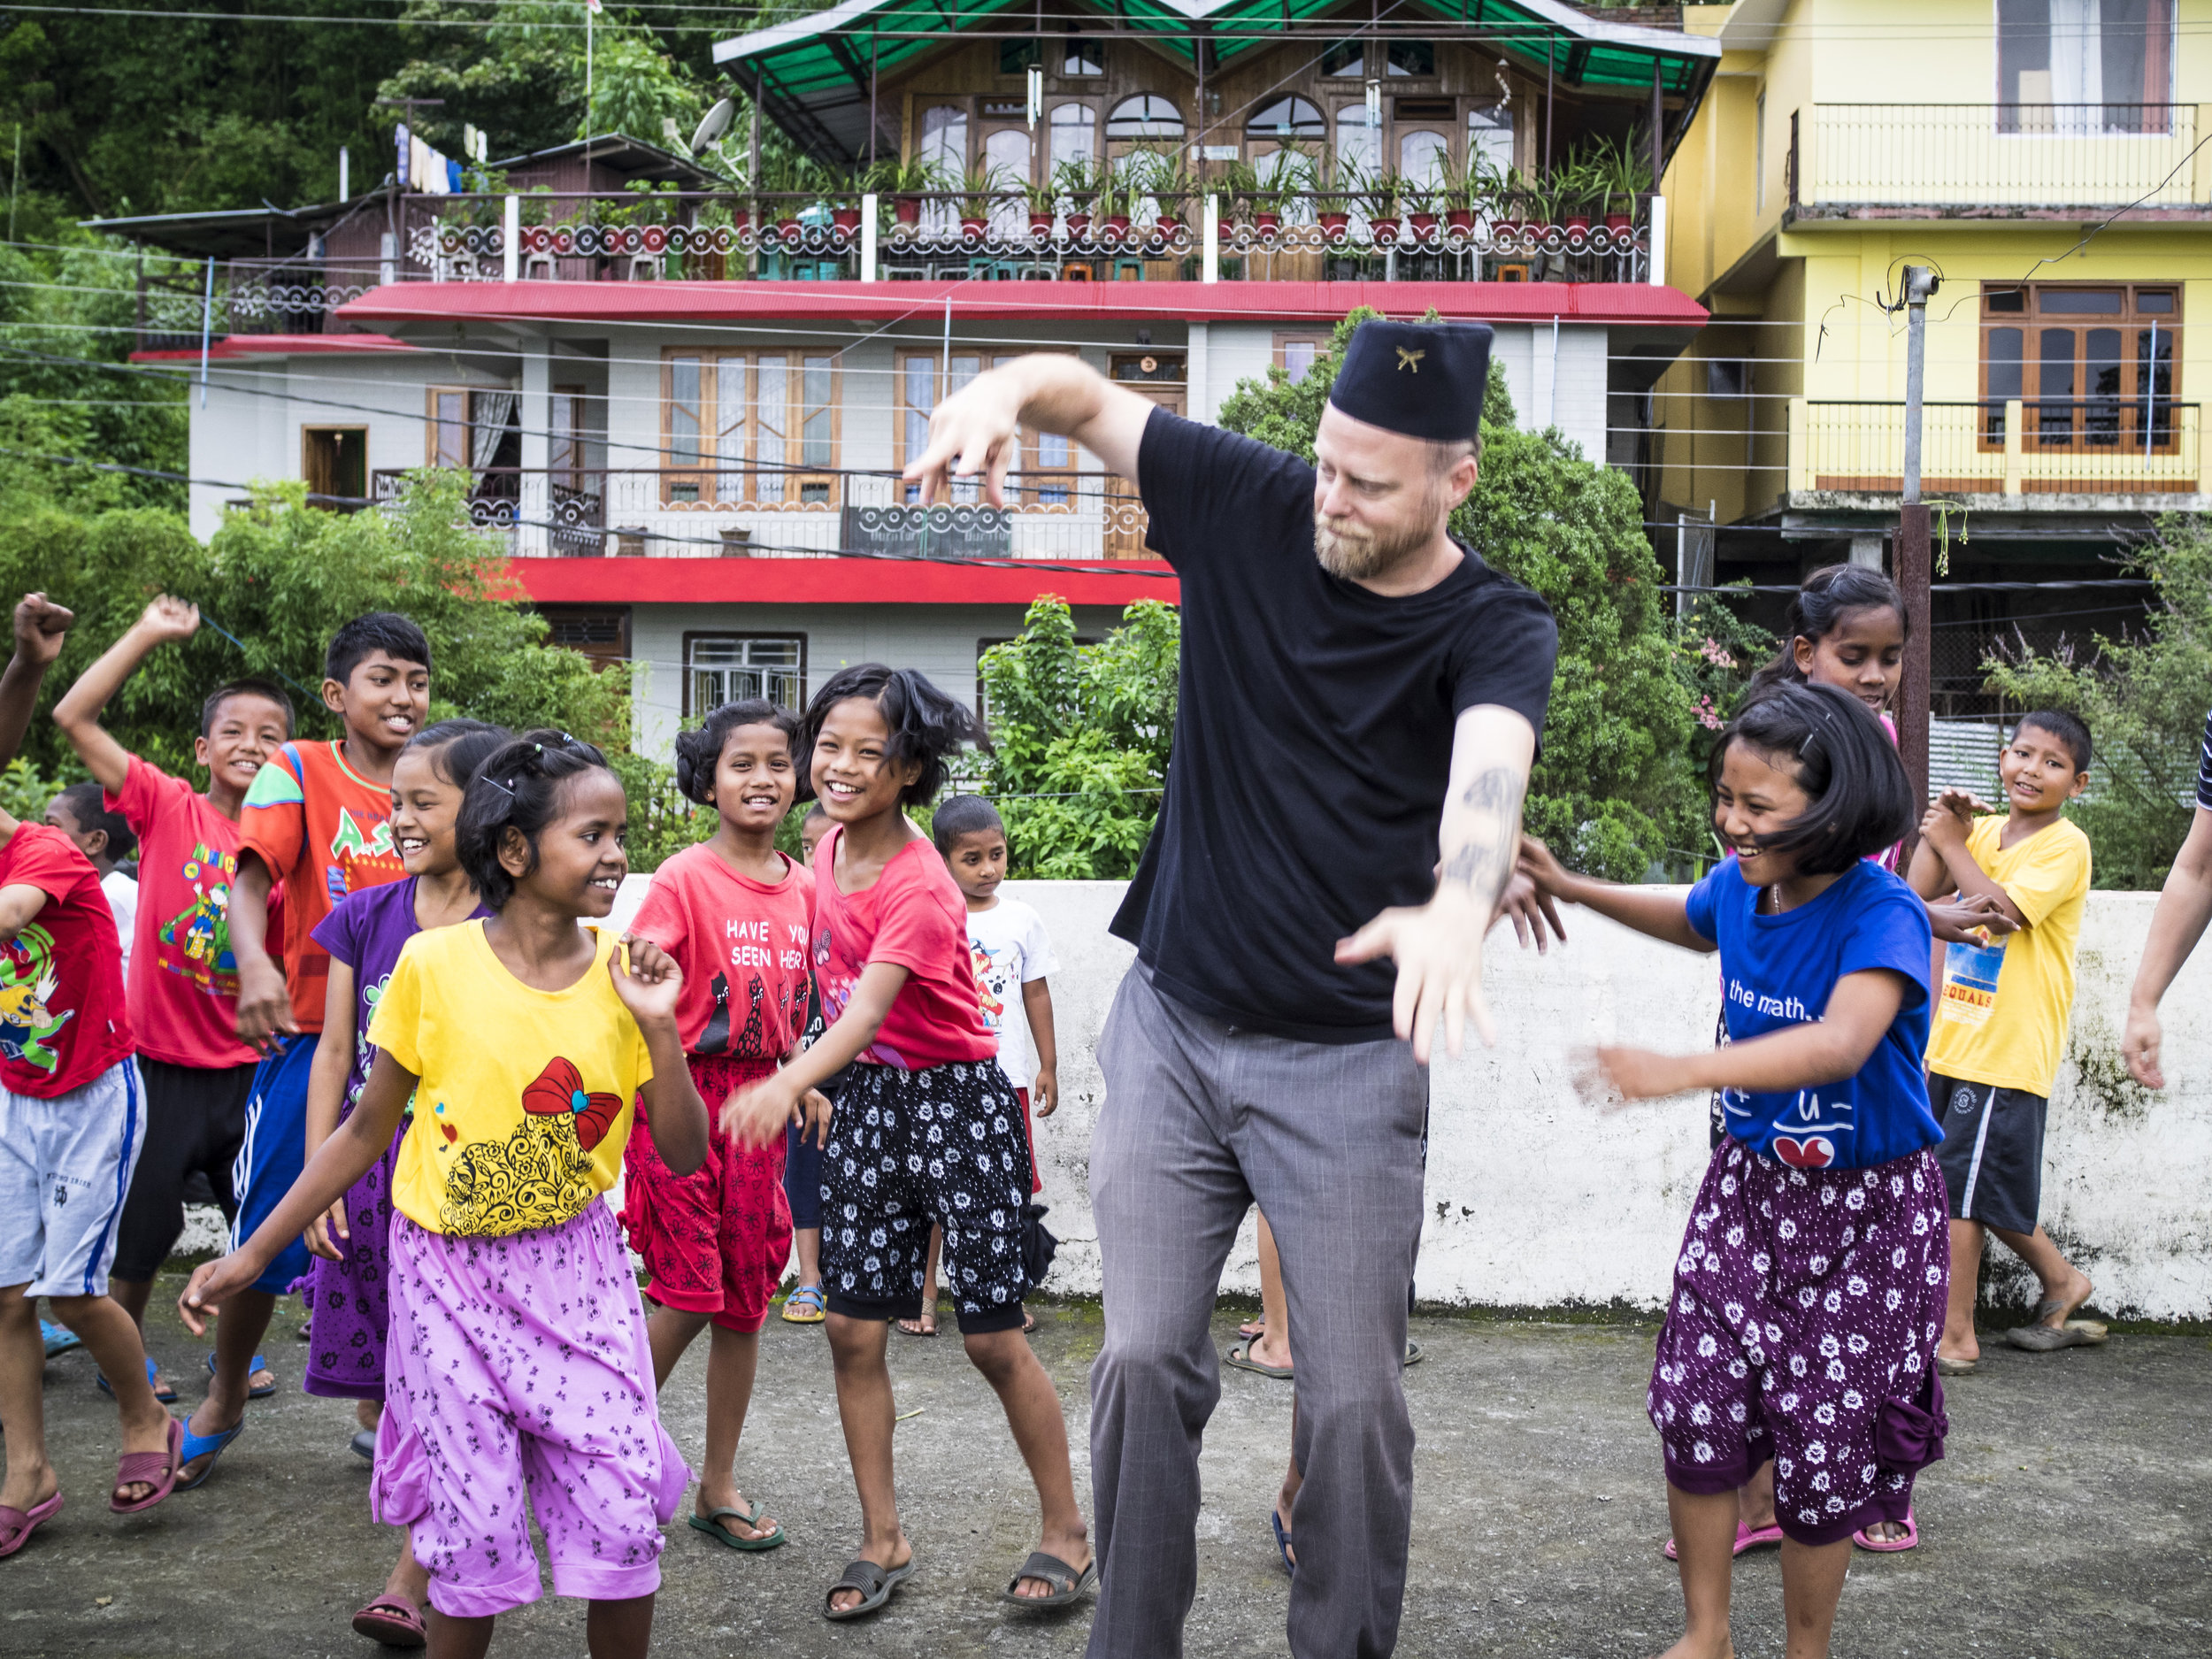 Executive Director John McCollum enjoys a dance break with the kids from our Kalimpong 2 home in India.